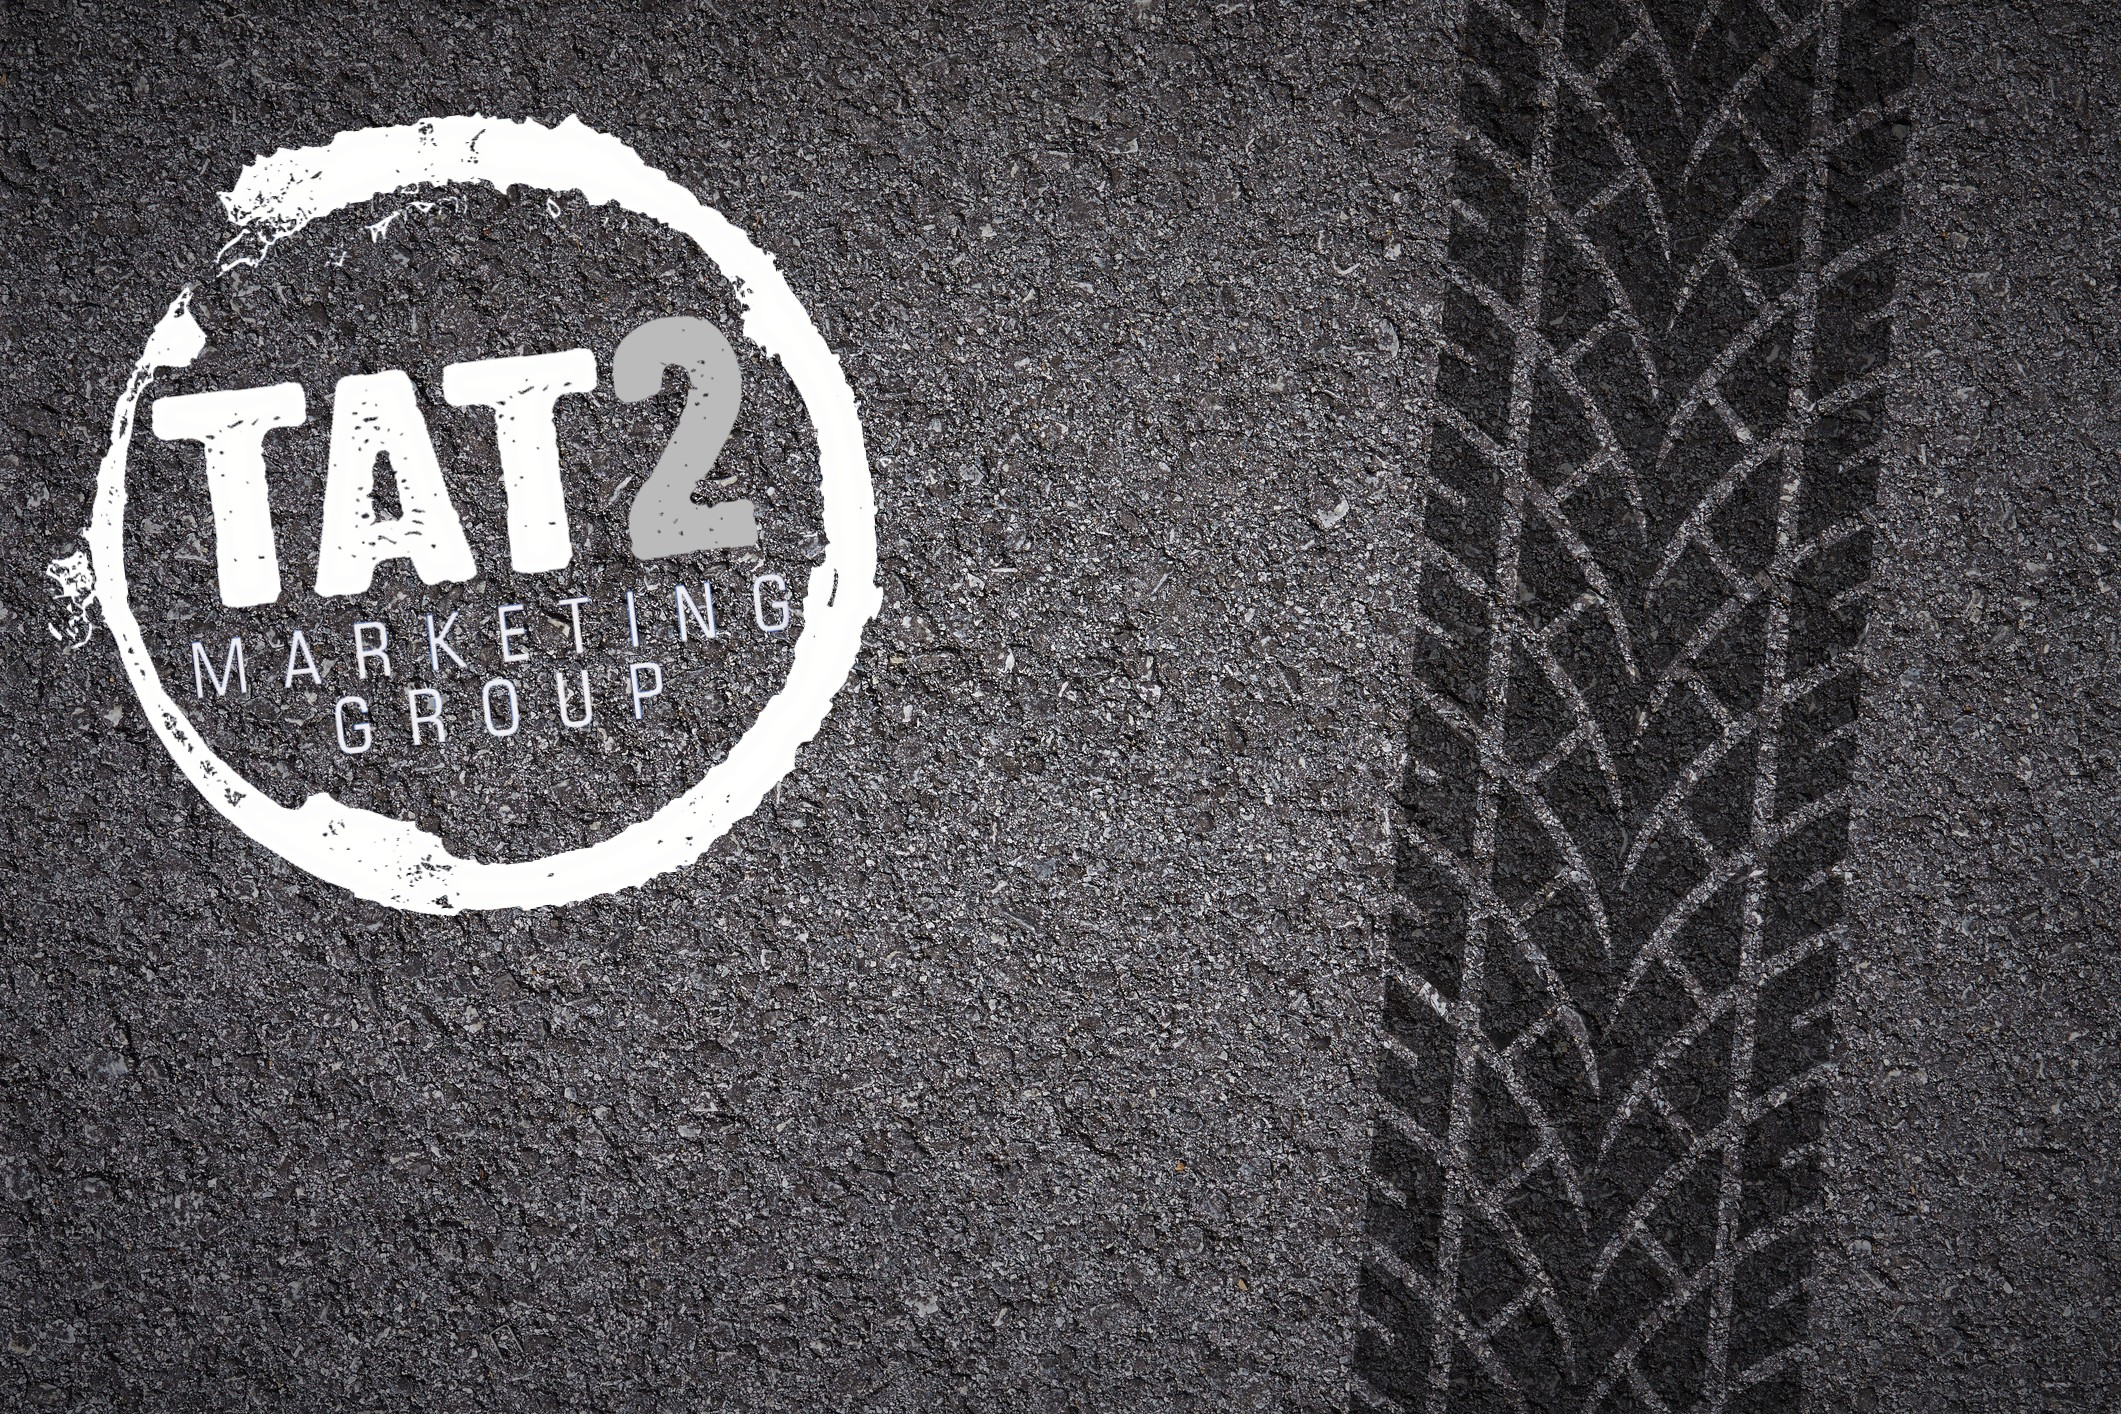 Logo and tire